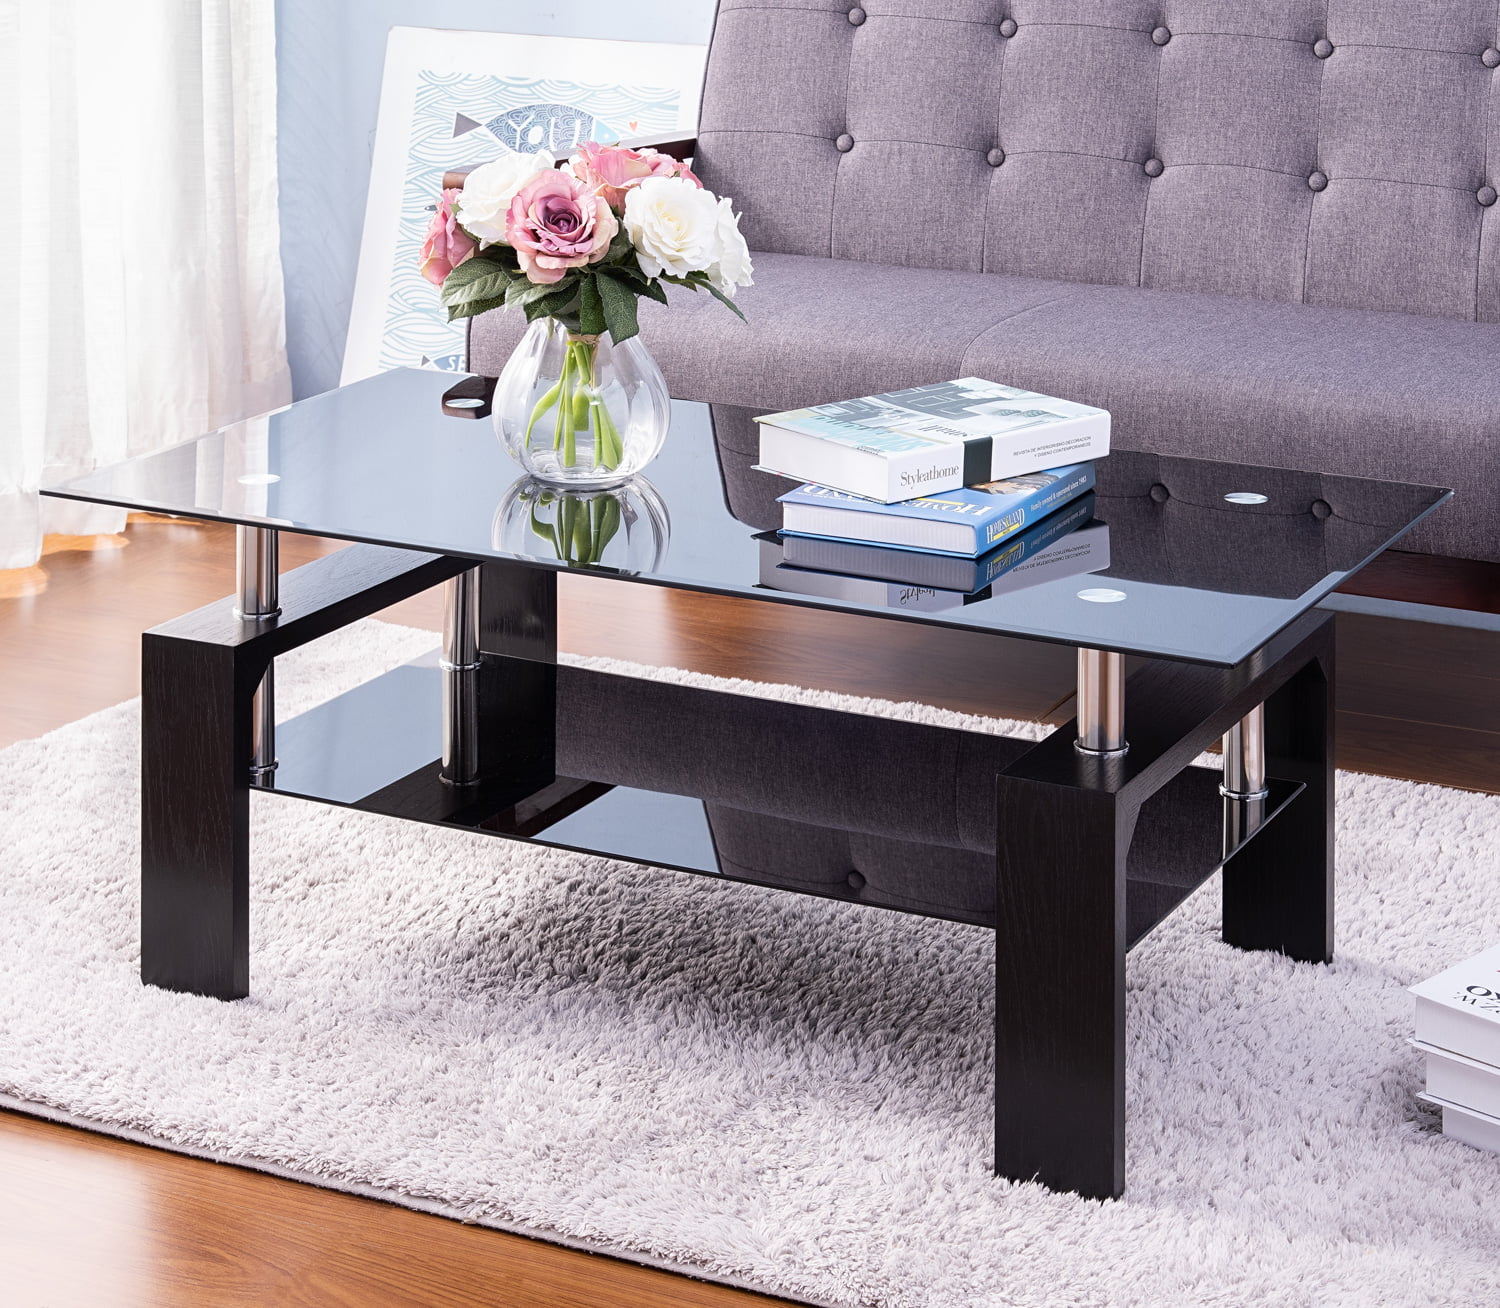 Picture of: Rectangle Glass Coffee Table Modern Side Center Table With Shelf Wood Legs Mid Century Tempered Glass Top Tea Table For Living Room Home Furniture Cocktail Coffee Table Black B1257 Walmart Com